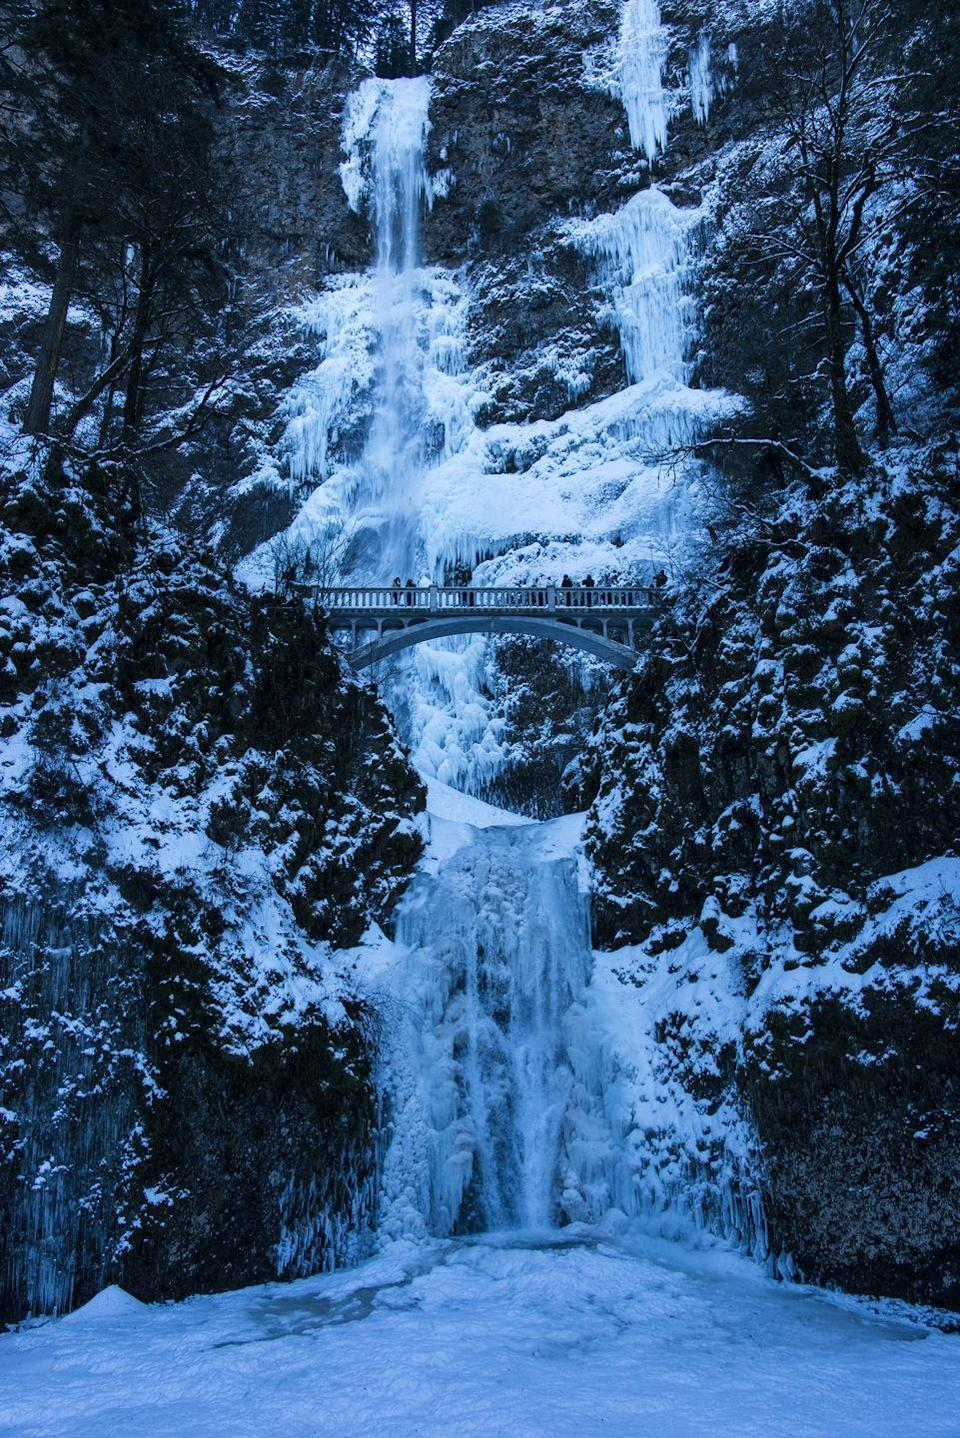 <p>Just outside of Portland, Oregon you can see the 620 foot Multnomah Falls up close and personal from the bridge walkway at its halfway point.</p>